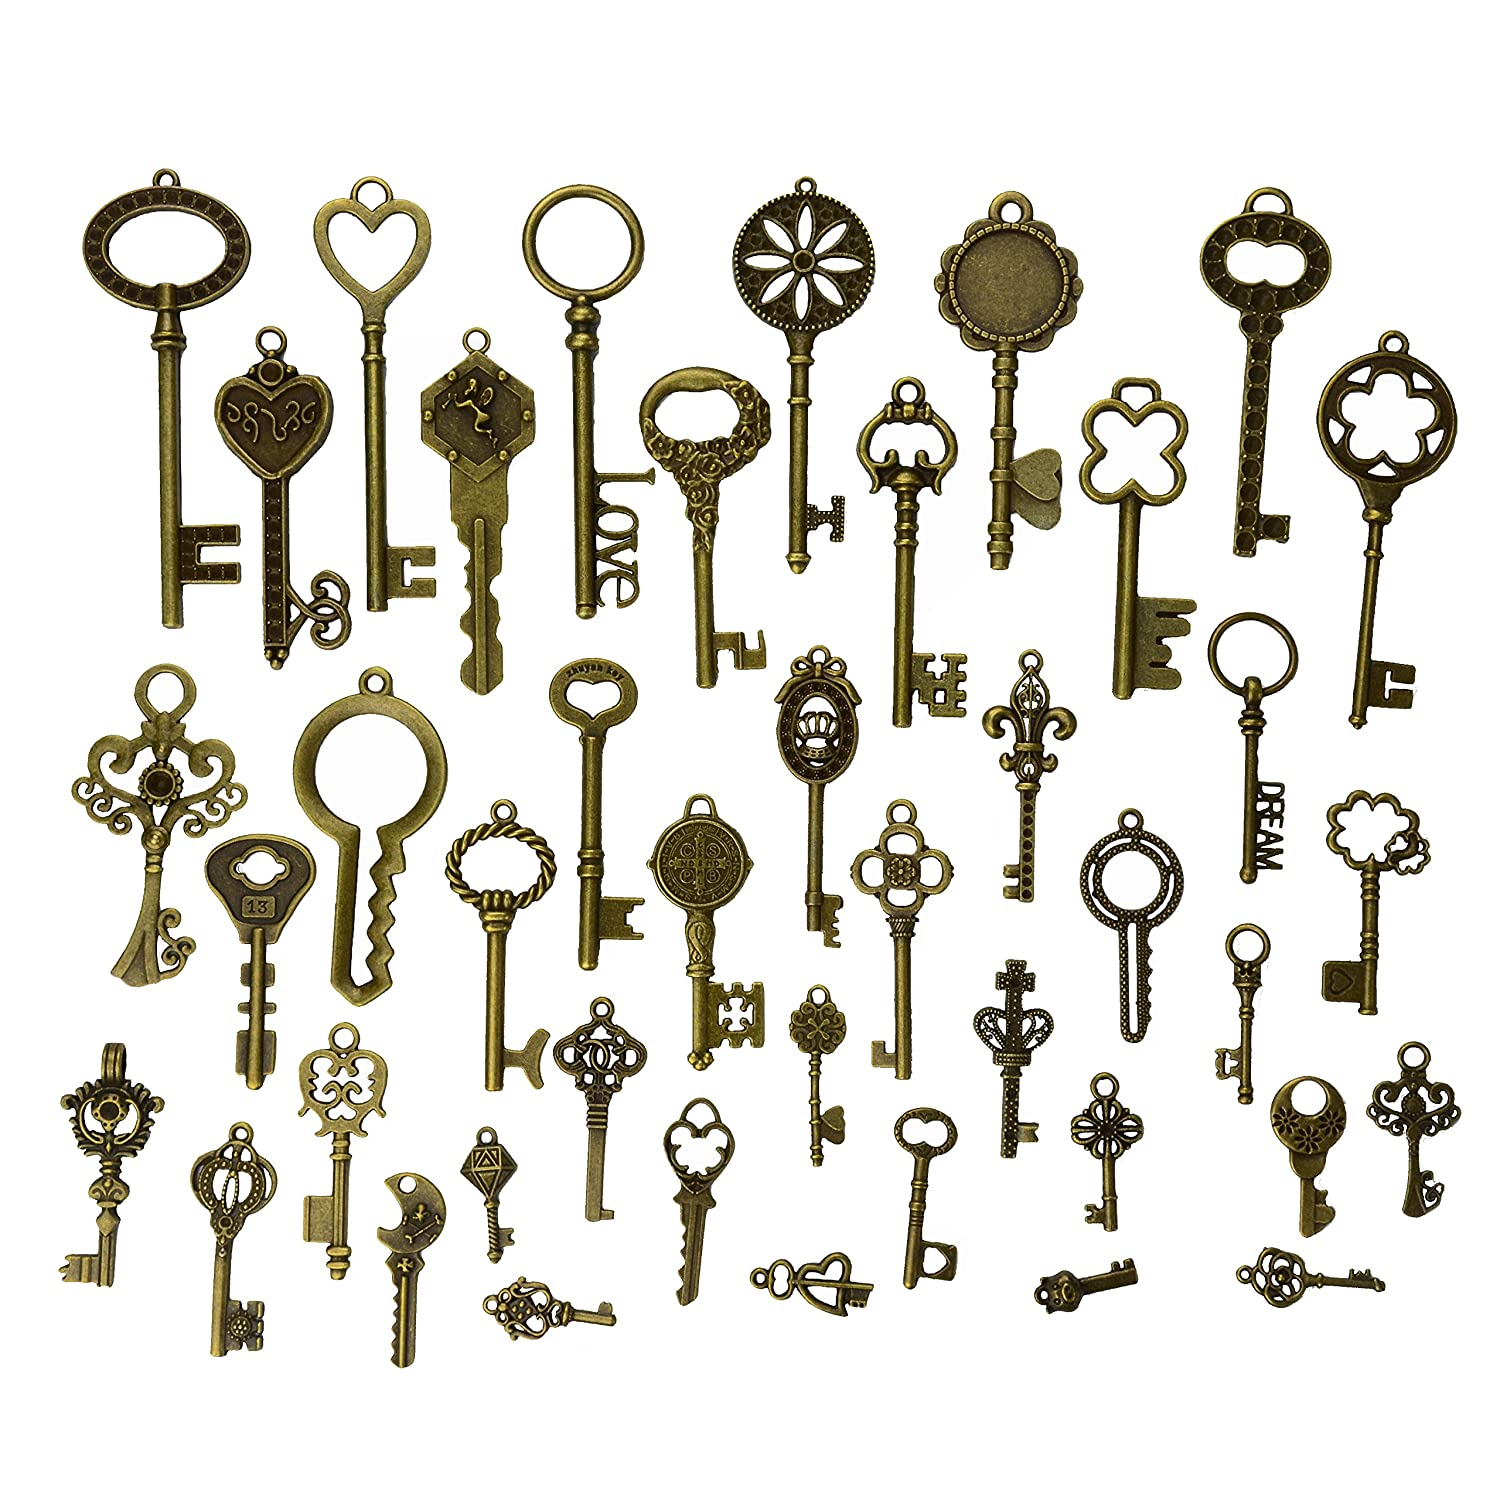 21pcs Jewelry Making Charms Craft keys Decorative Key Skeleton Bronze Key in Antique Bronze Style for Wedding Graduation Christmas(21pcs) Makhry